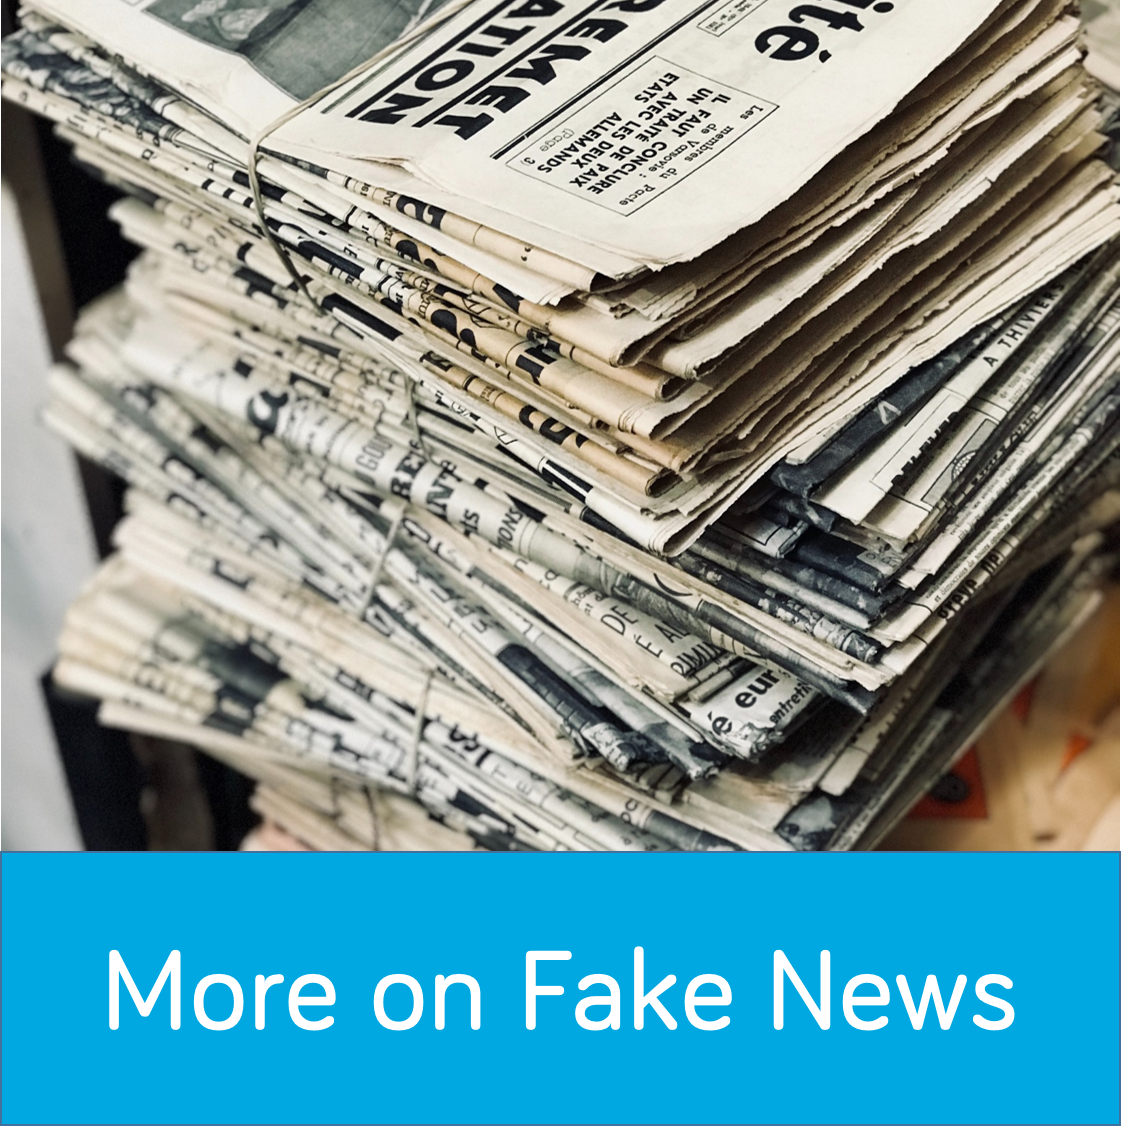 More on Fake News button. Picture of newspapers in a stack